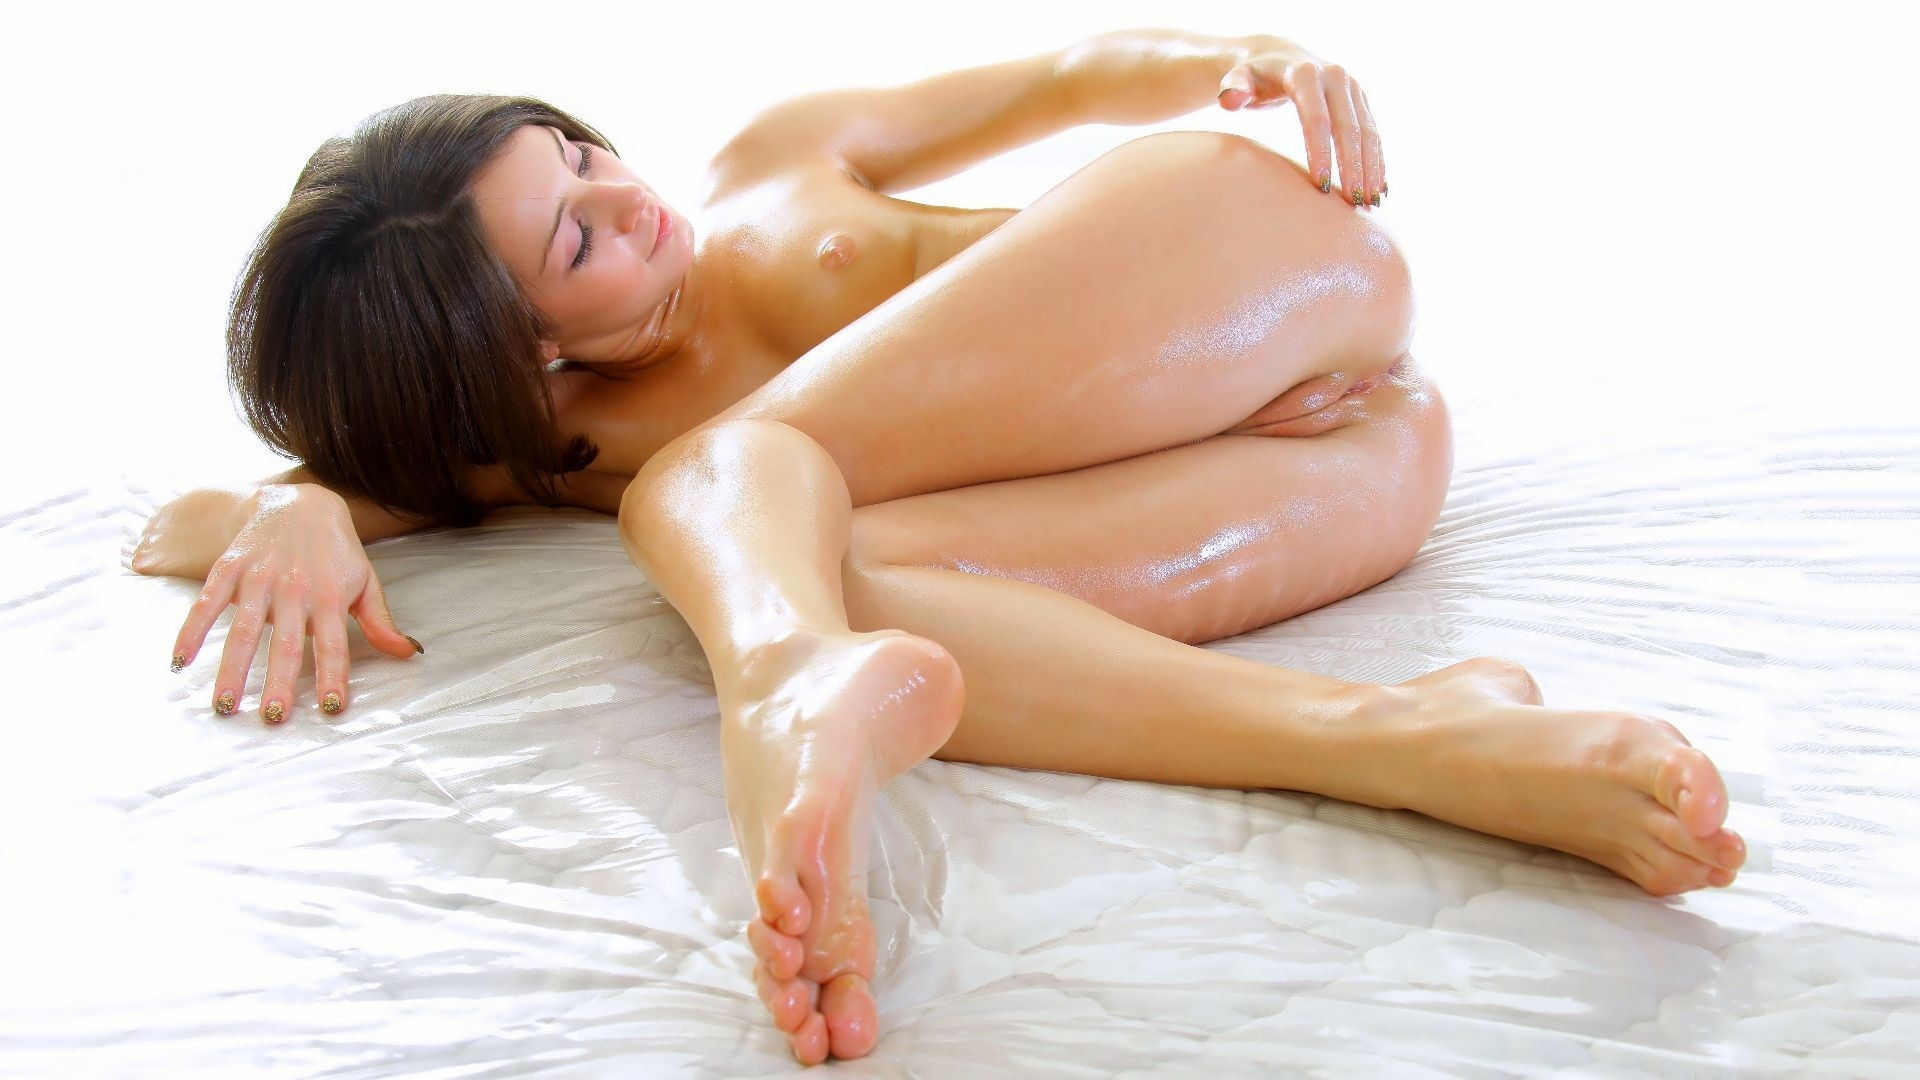 Beautiful girl has a nude massage and passionate sex